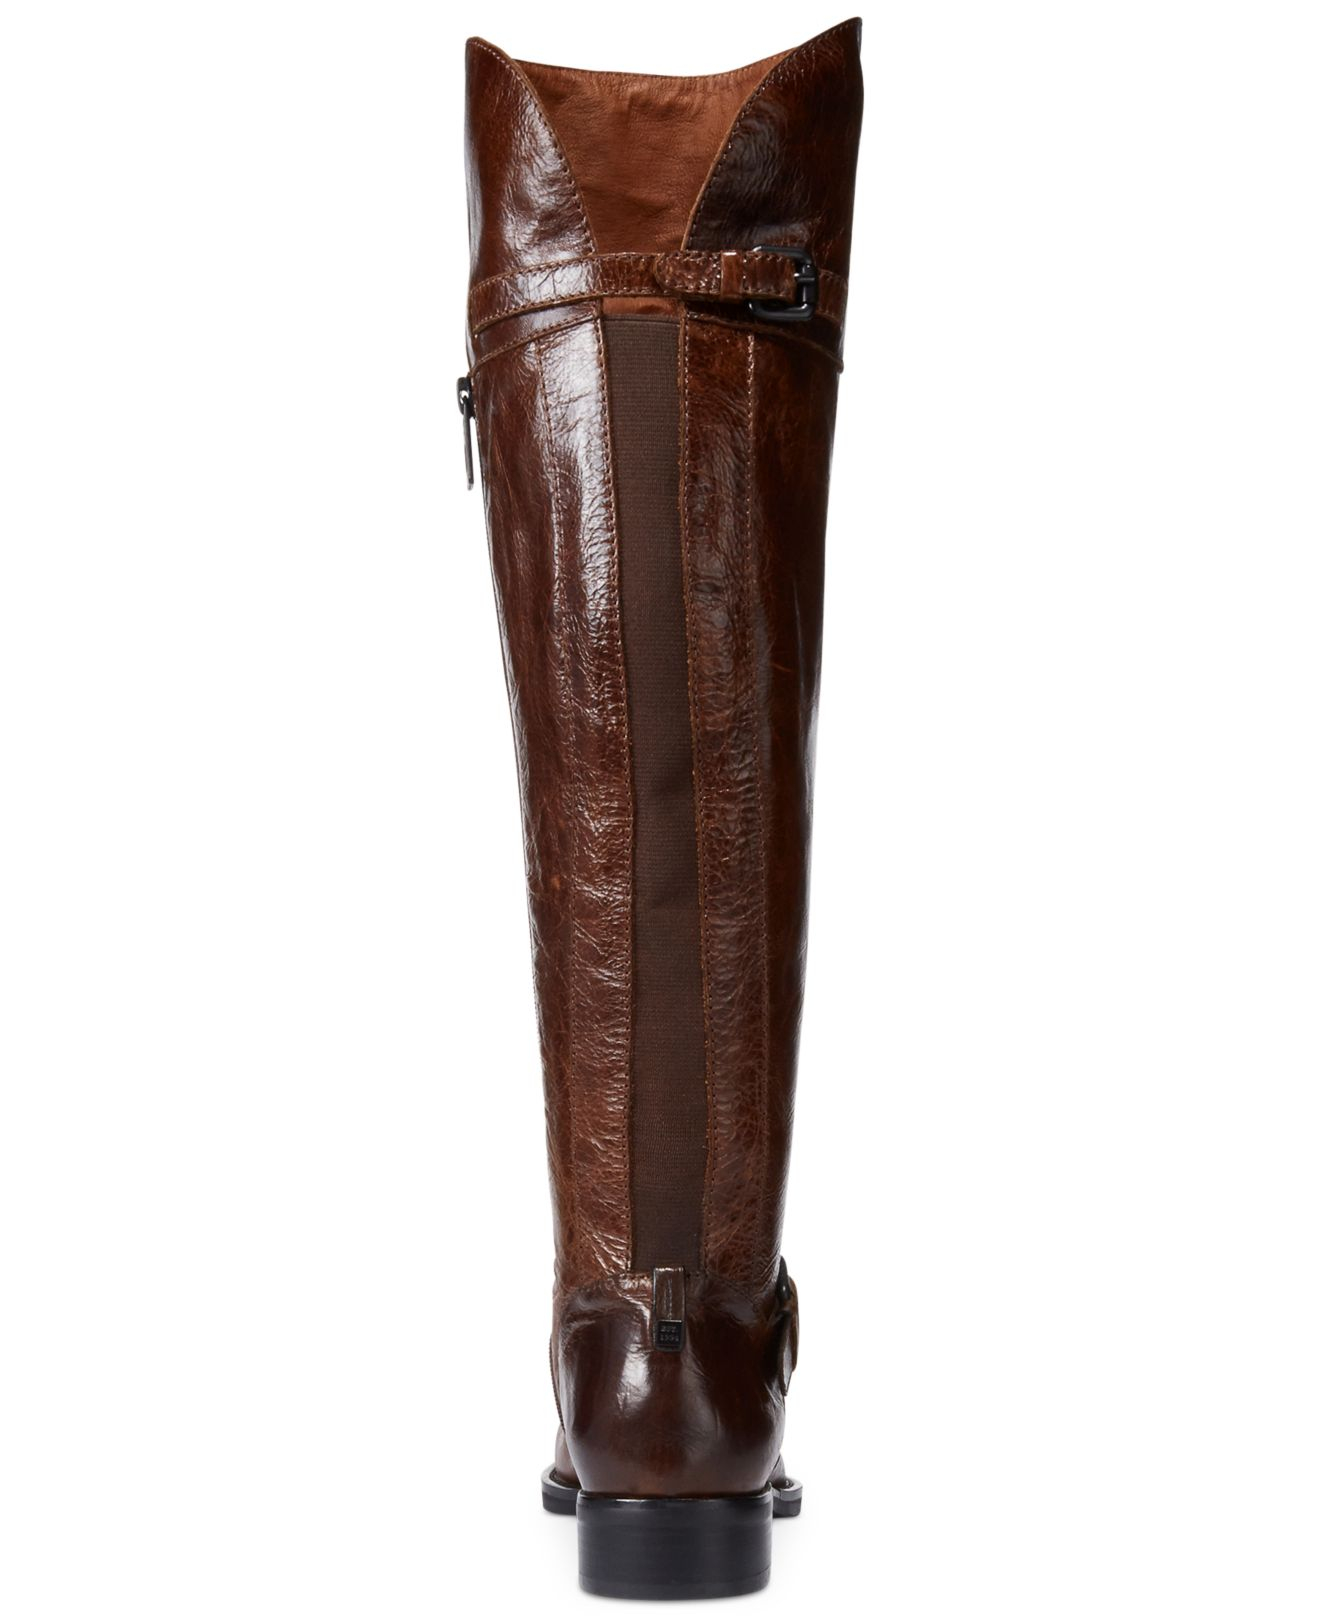 Rudsak Desdemona Over-The-Knee Riding Boots in Brown